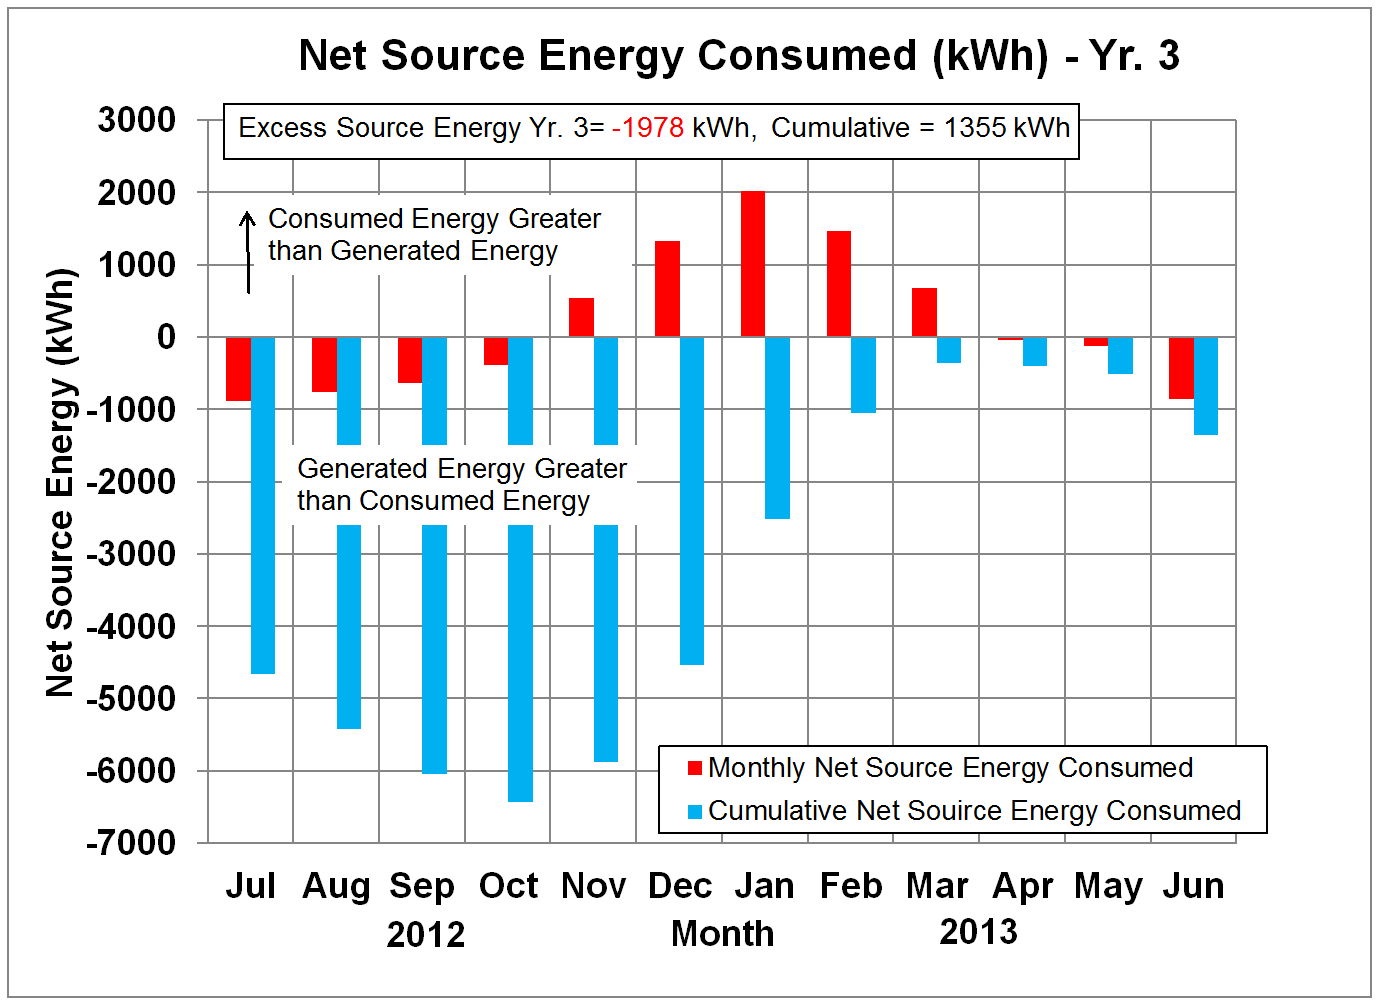 Net Source Energy in kWh - Yr. 3